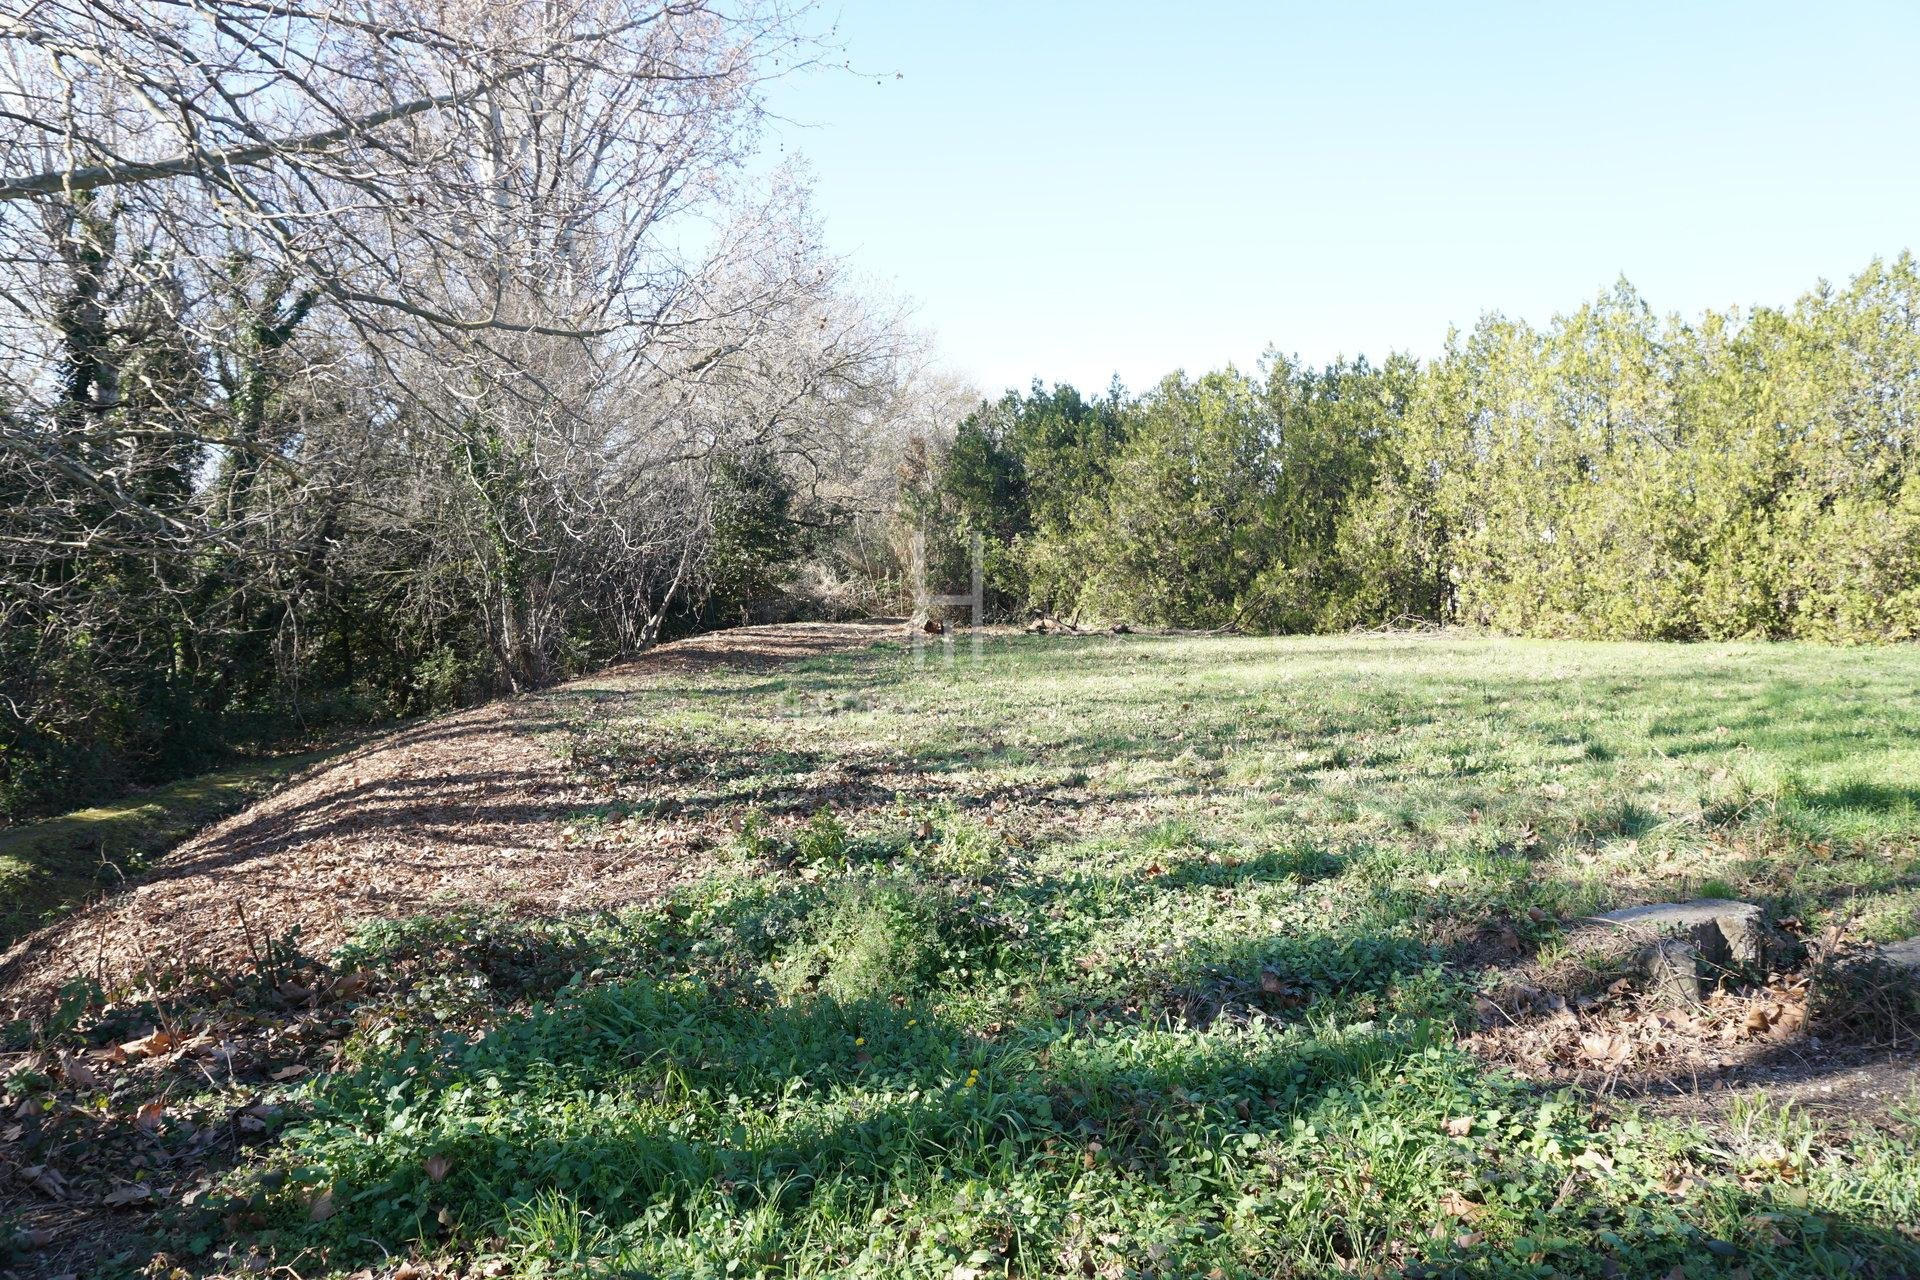 Sale Building land - Saint-Rémy-de-Provence